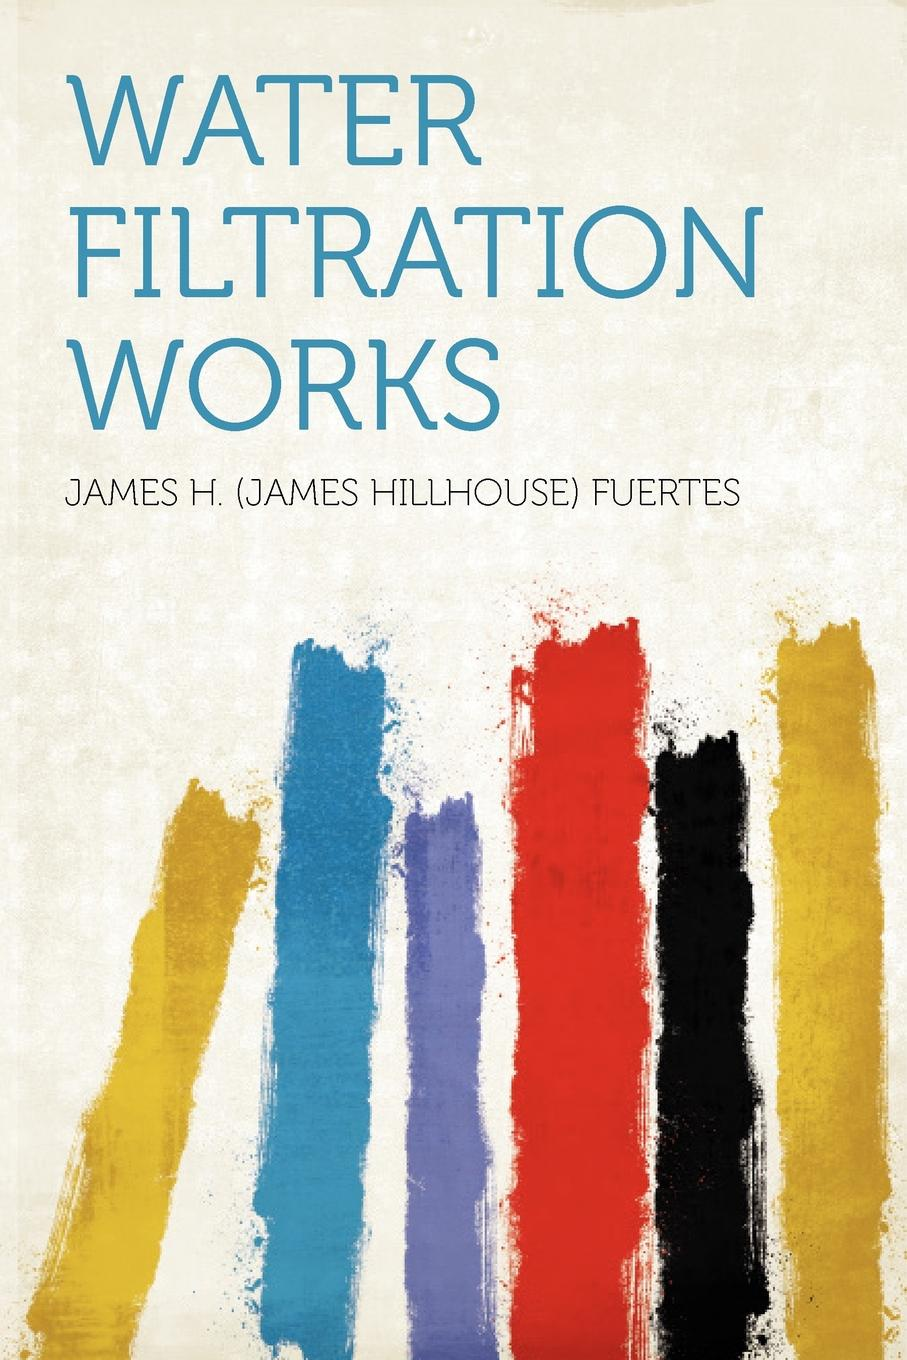 James H. (James Hillhouse) Fuertes Water Filtration Works barrow tzs1 a02 yklzs1 t01 g1 4 white black silver gold acrylic water cooling plug coins can be used to twist the